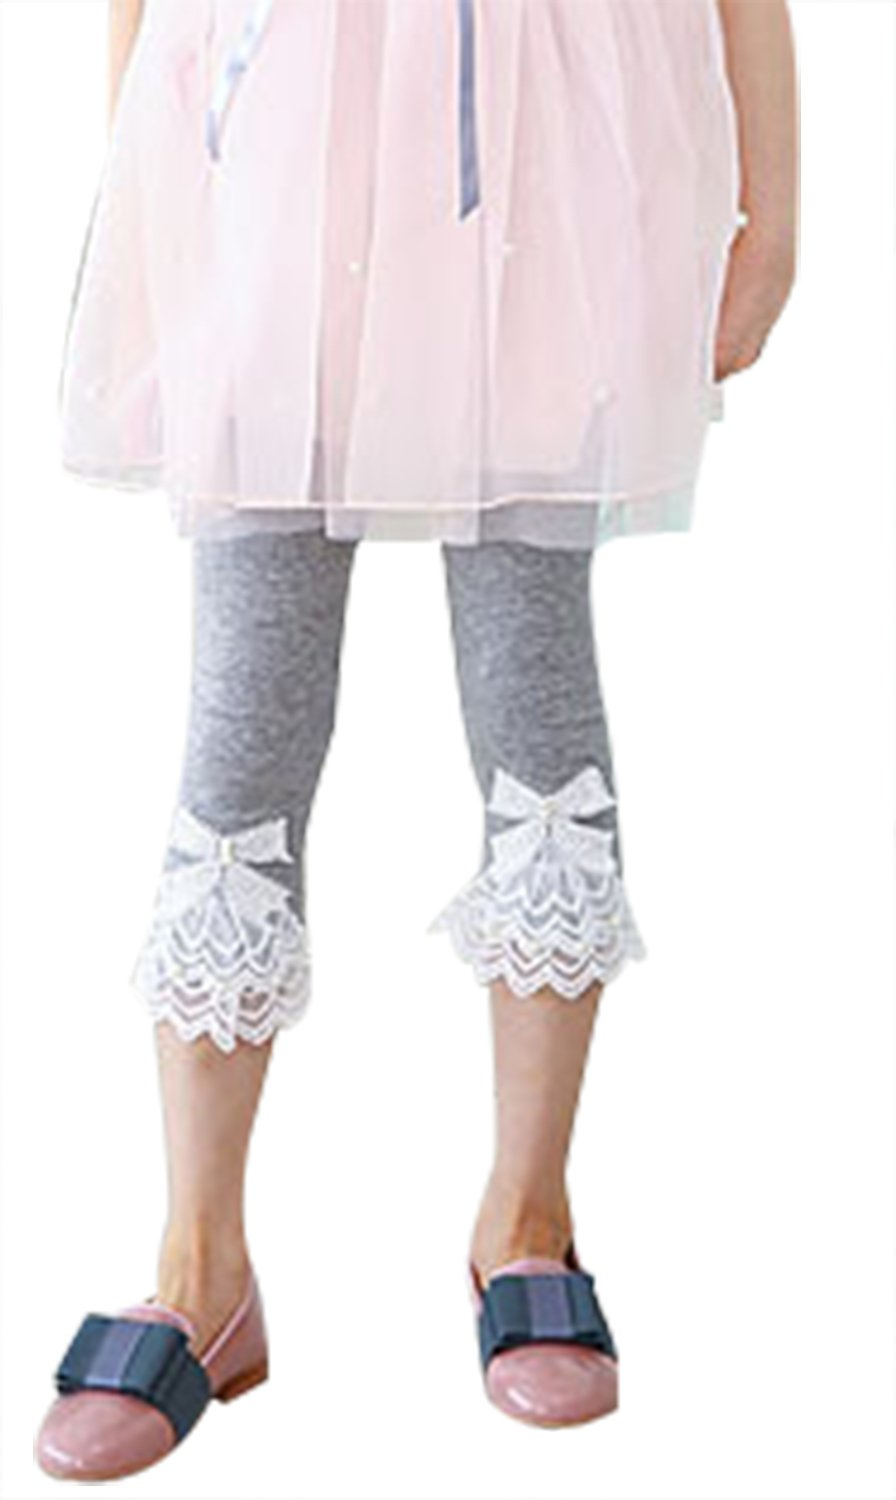 Girls Skinny Stretch Lace Capri Jeans Leggings Clothes Outfit¬Grey 2T